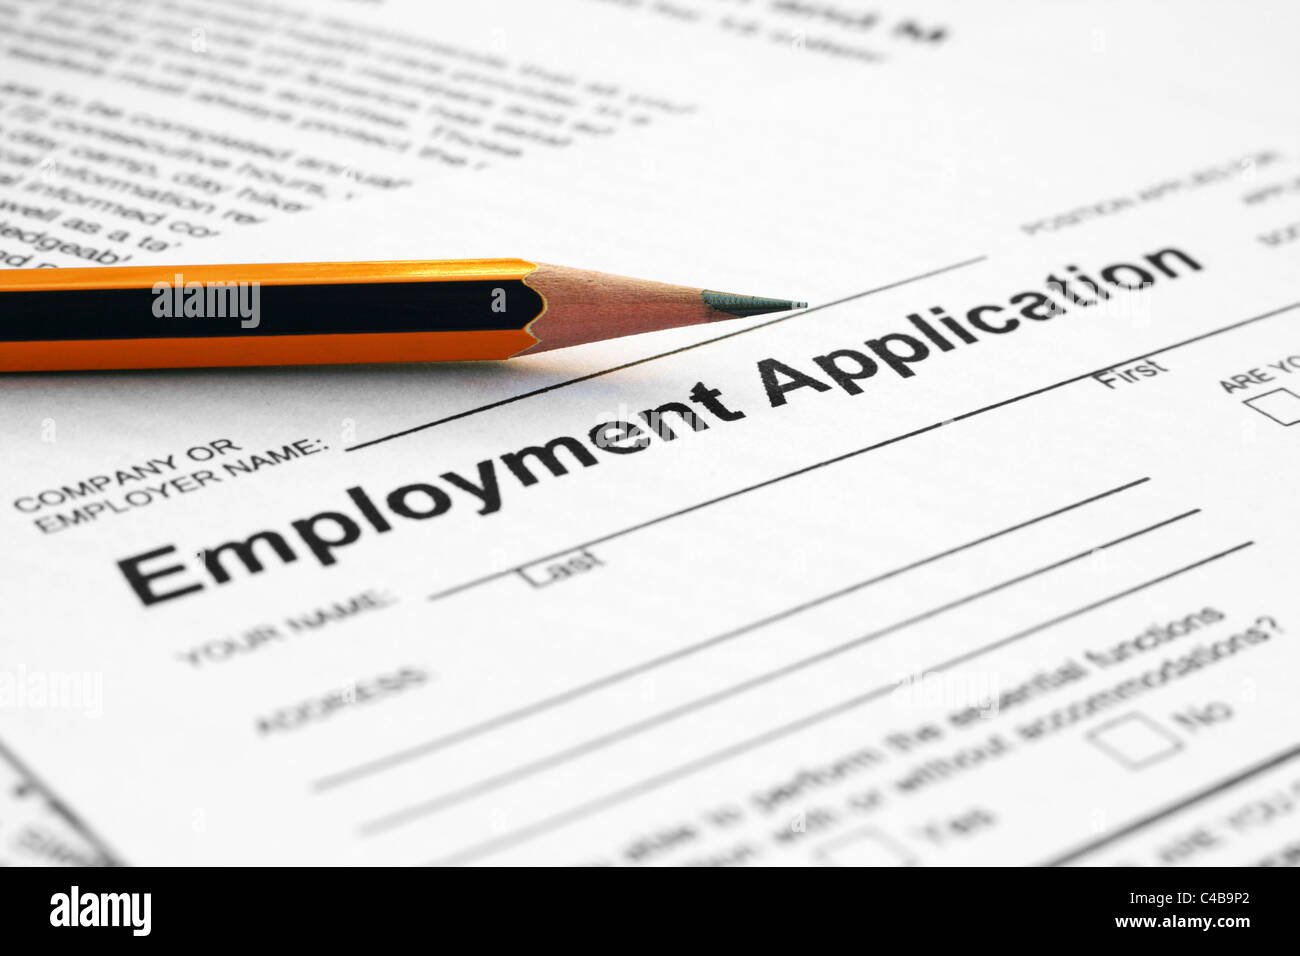 Employment application form - Stock Image